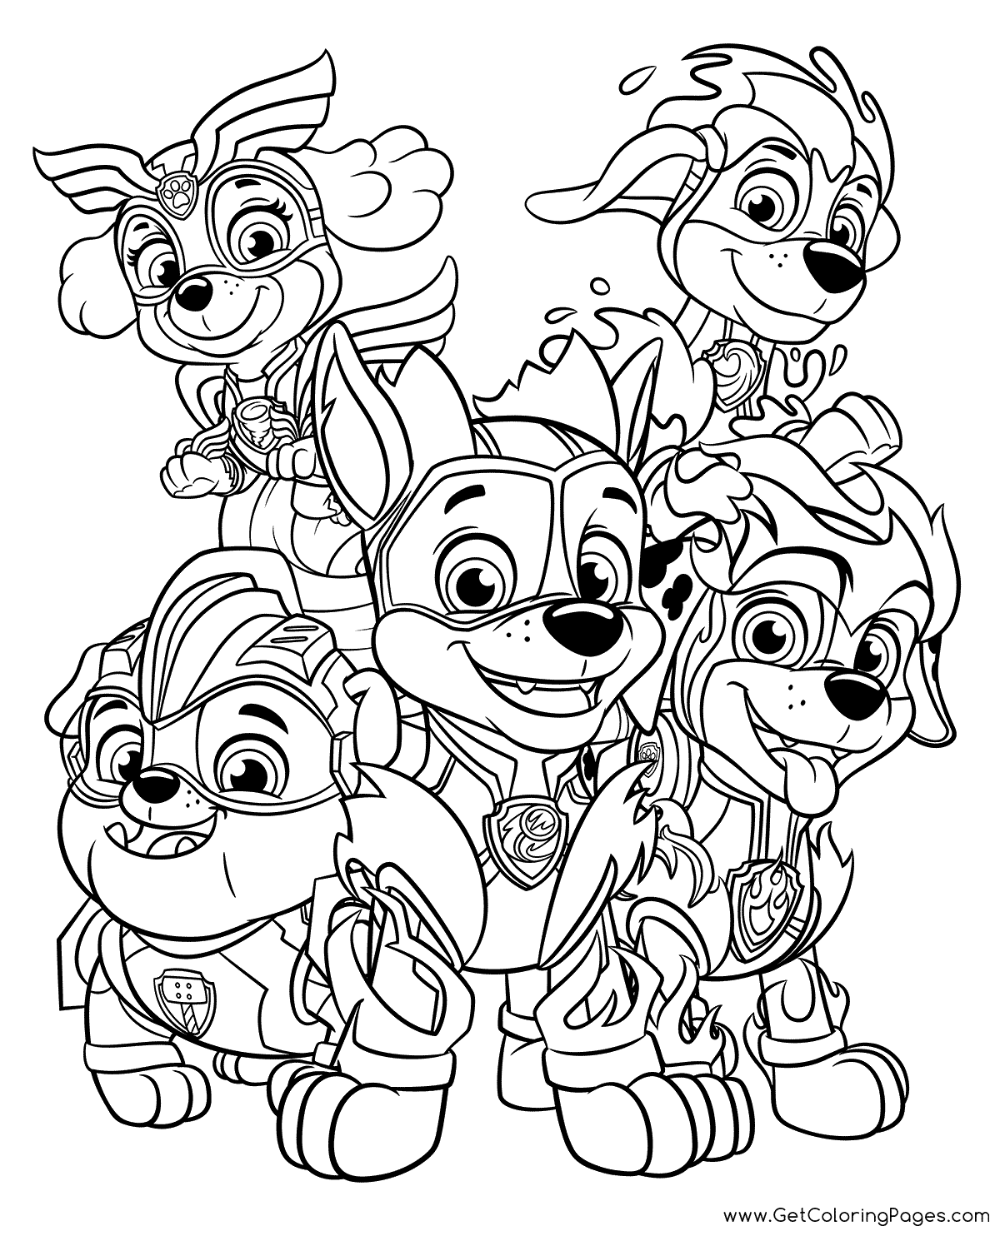 Download Now This Free Coloring Page Or Print And Color For Your Kids Or Friends In 2020 Paw Patrol Coloring Pages Paw Patrol Coloring Paw Patrol Super Pup